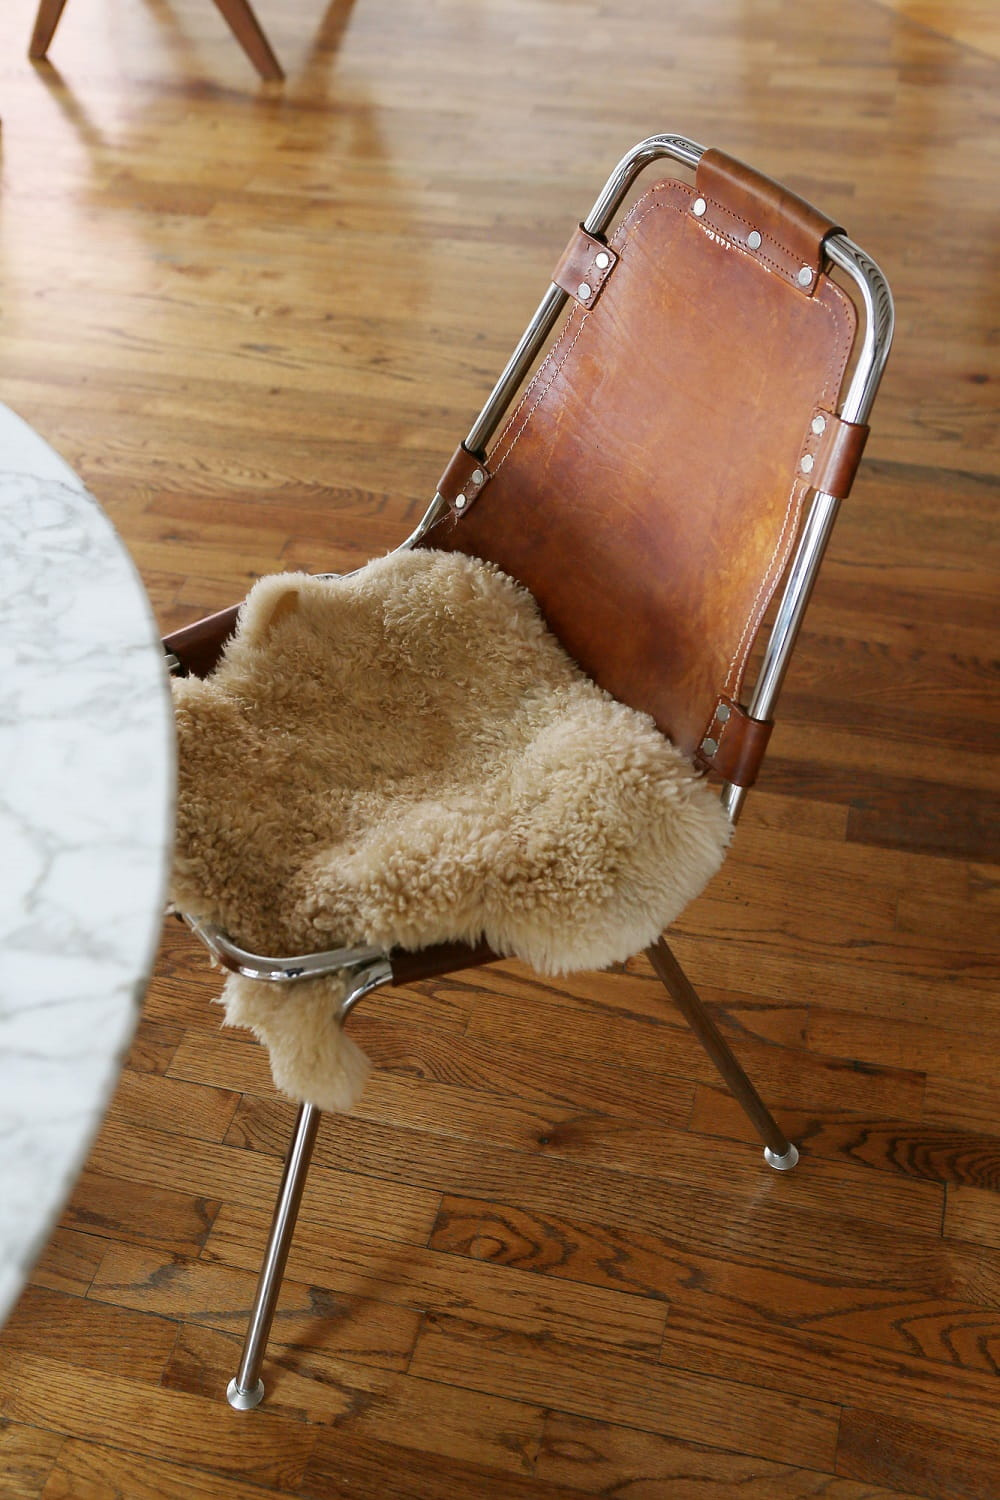 Charlotte Perriand Dining Chairs - Leather sling with swatches of fur